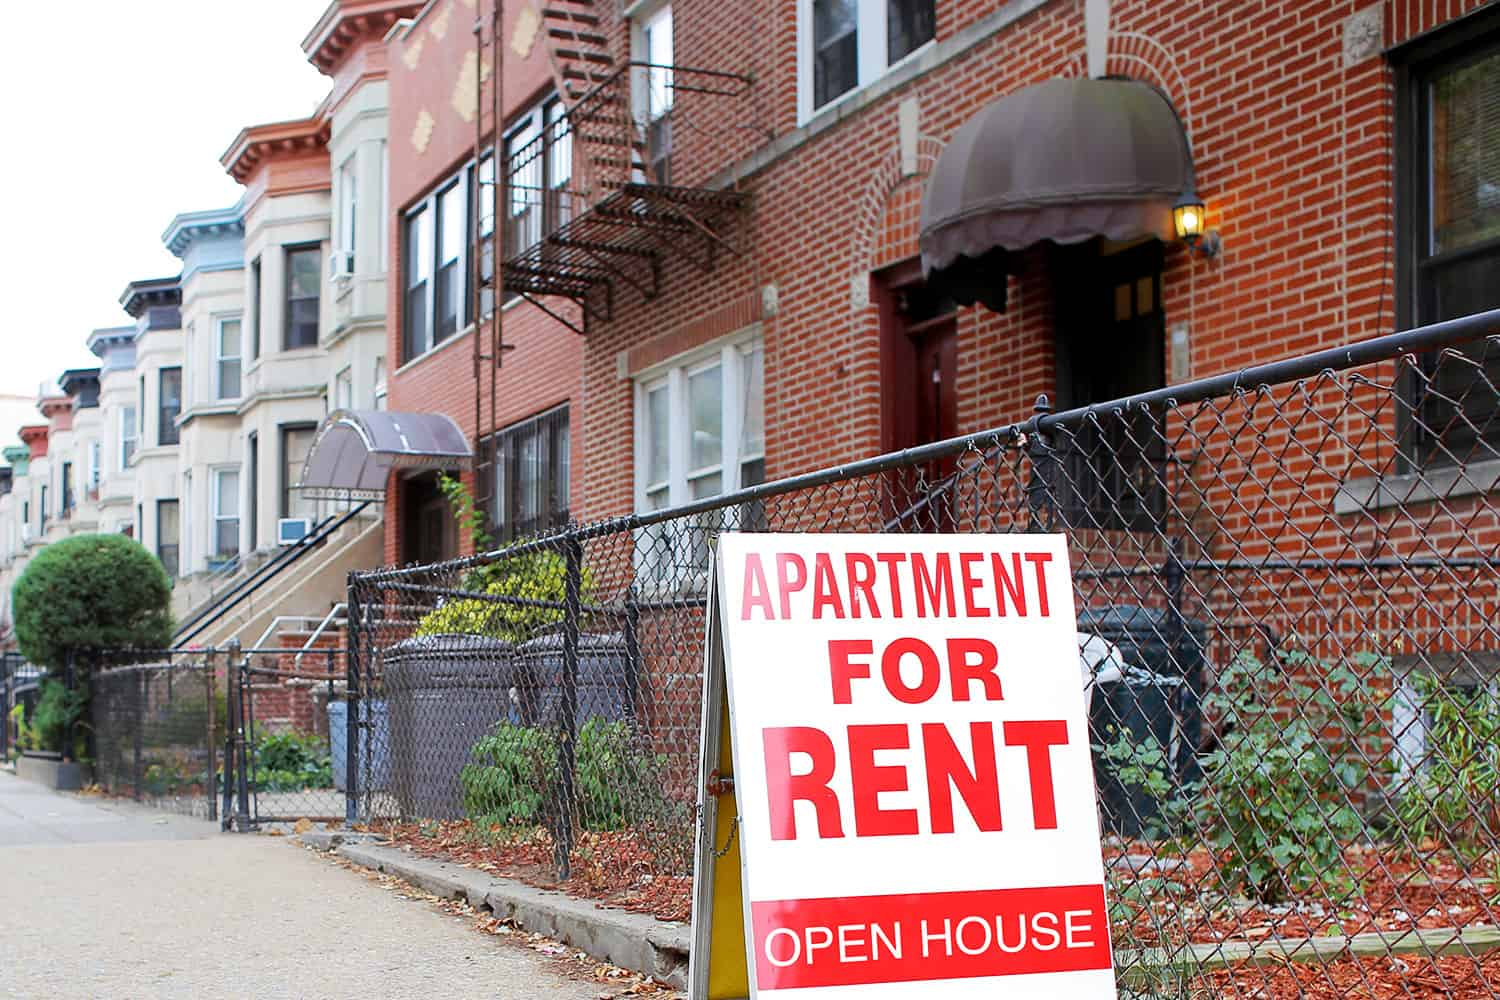 photo of an apartment for rent sign